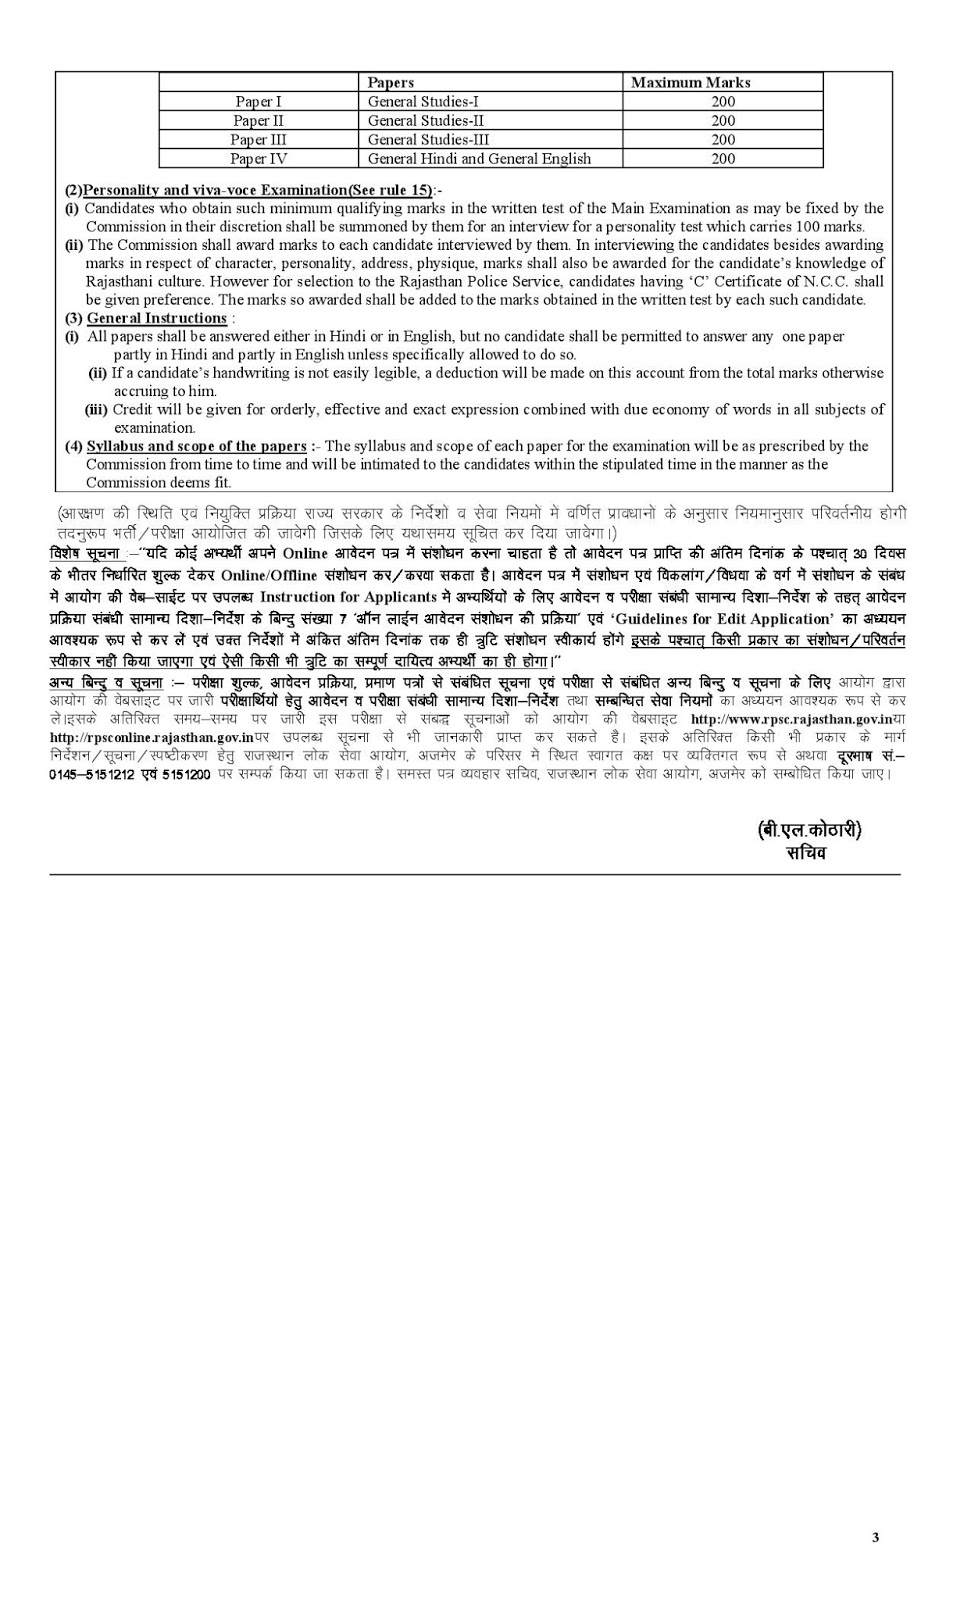 kaptan meena  online application can be apply via rpsc online web portal rpsconline rajasthan gov in starting date 10 2016 last date 25 2016